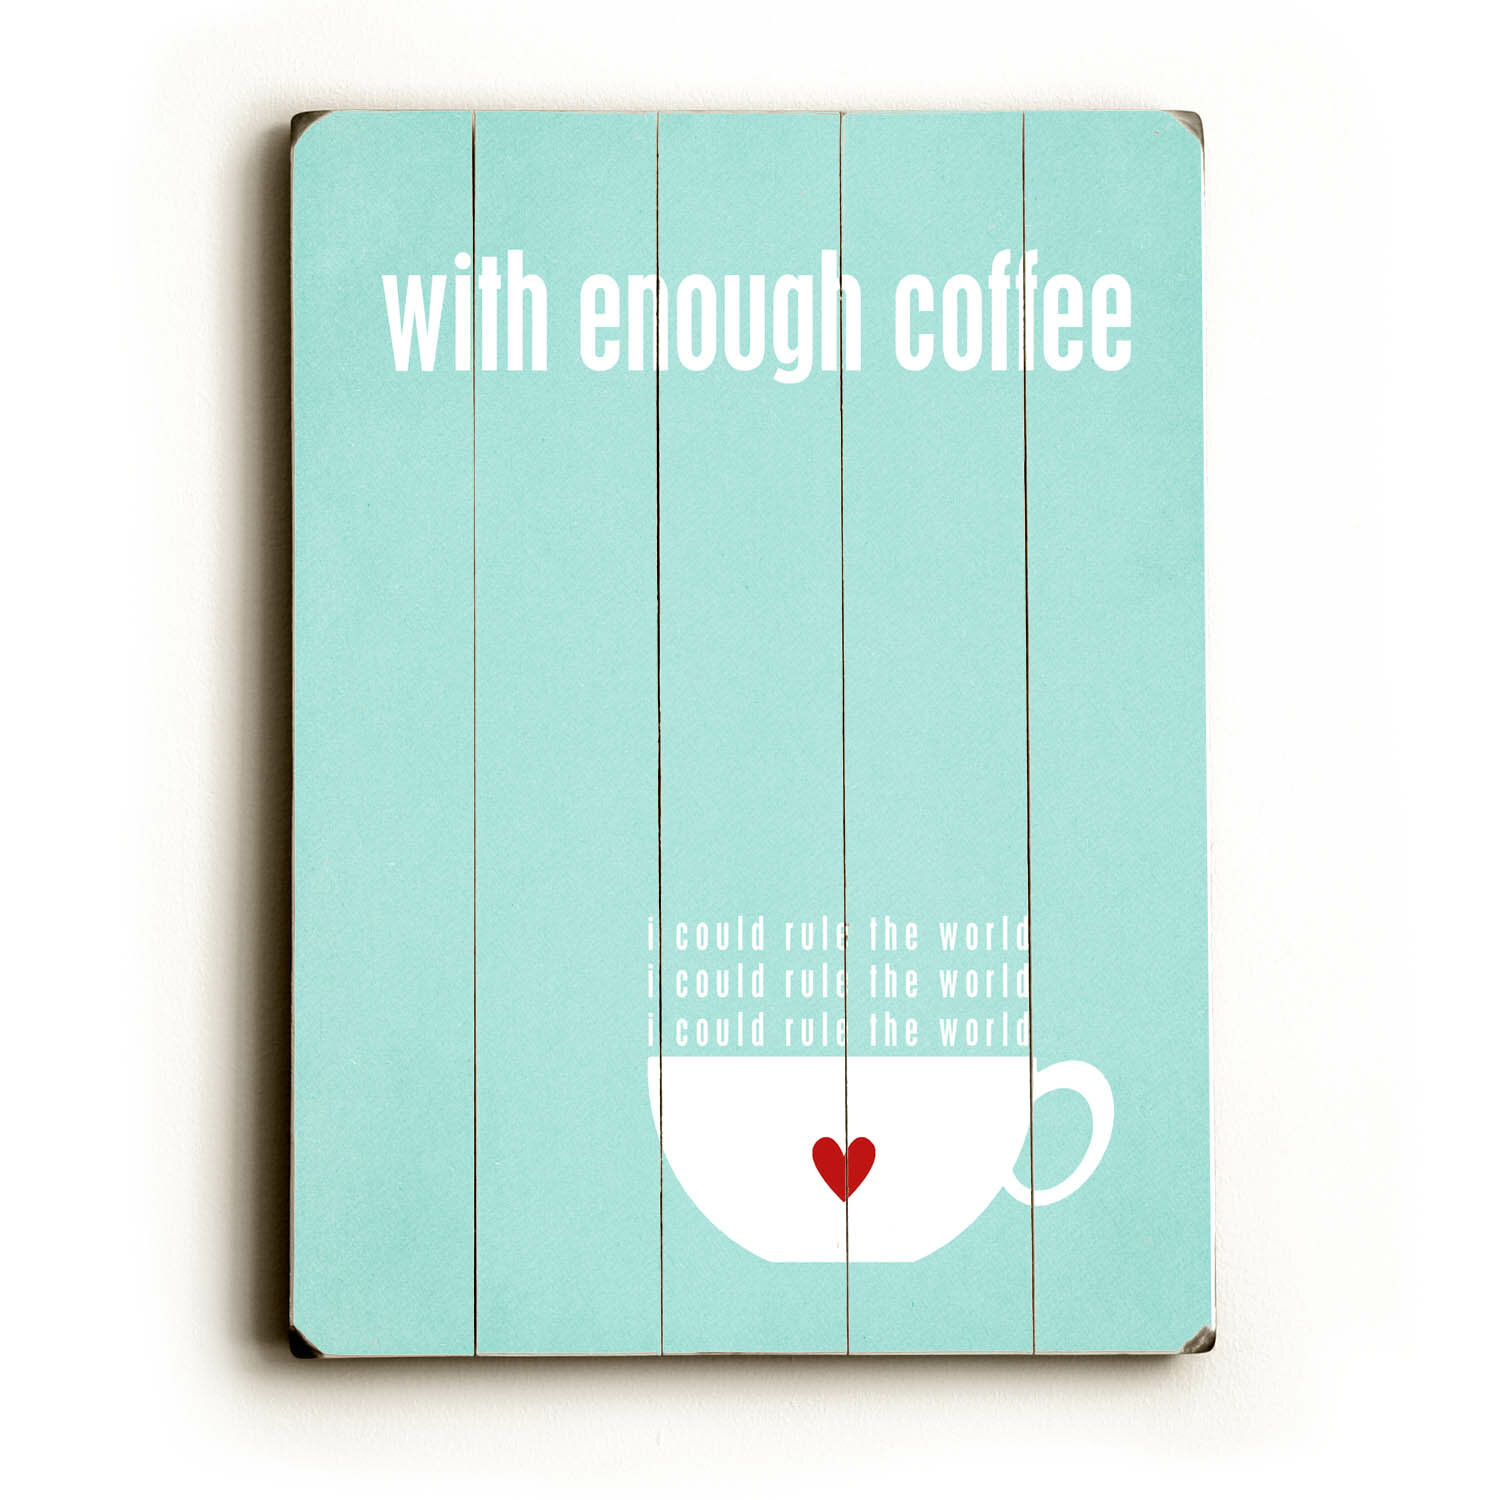 Artehouse Llc With Enough Coffee By Cheryl Overton Textual Art Plaque Wayfair